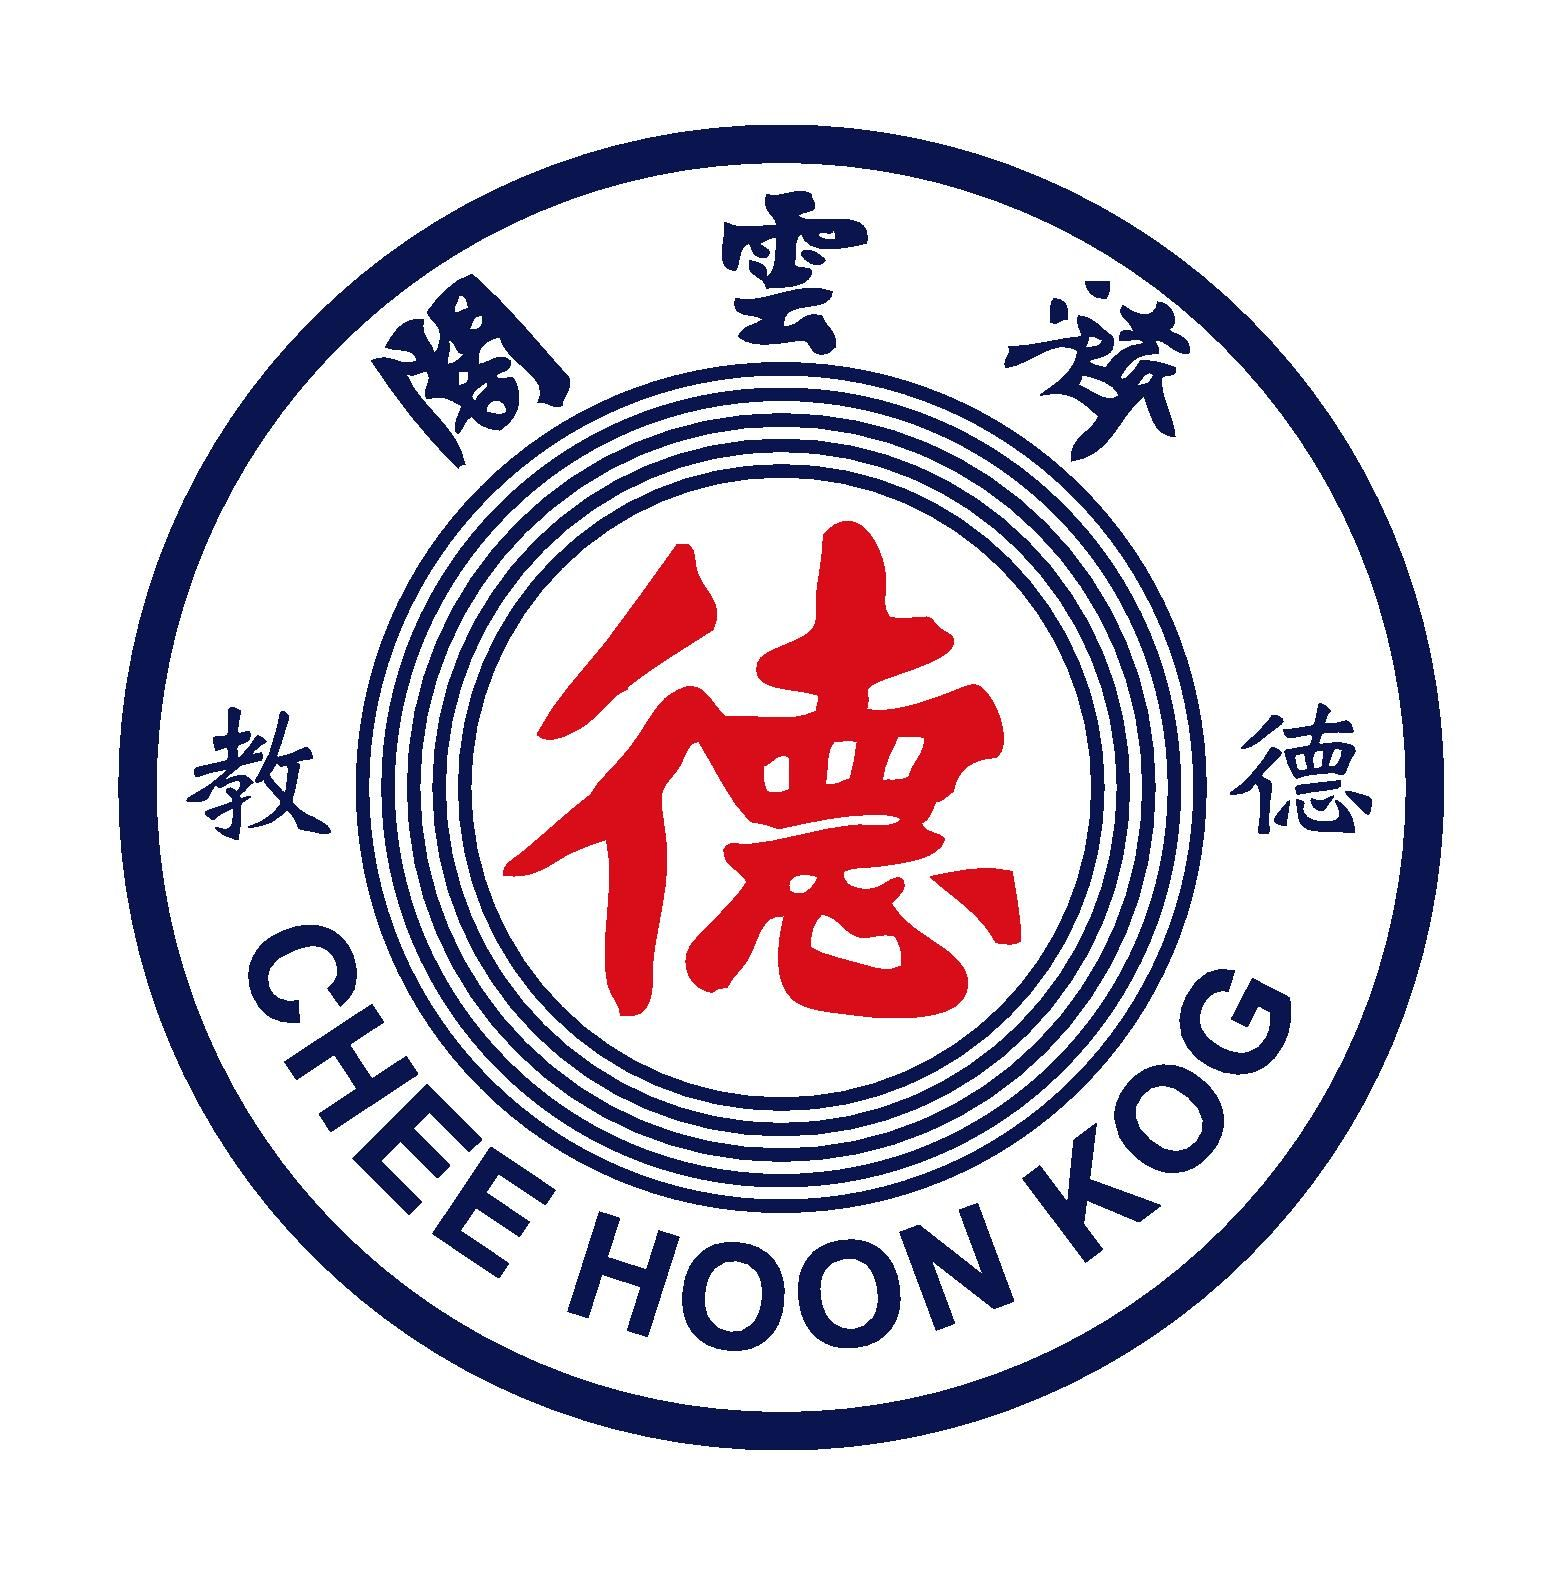 Chee Hoon Kog Moral Promotion Society